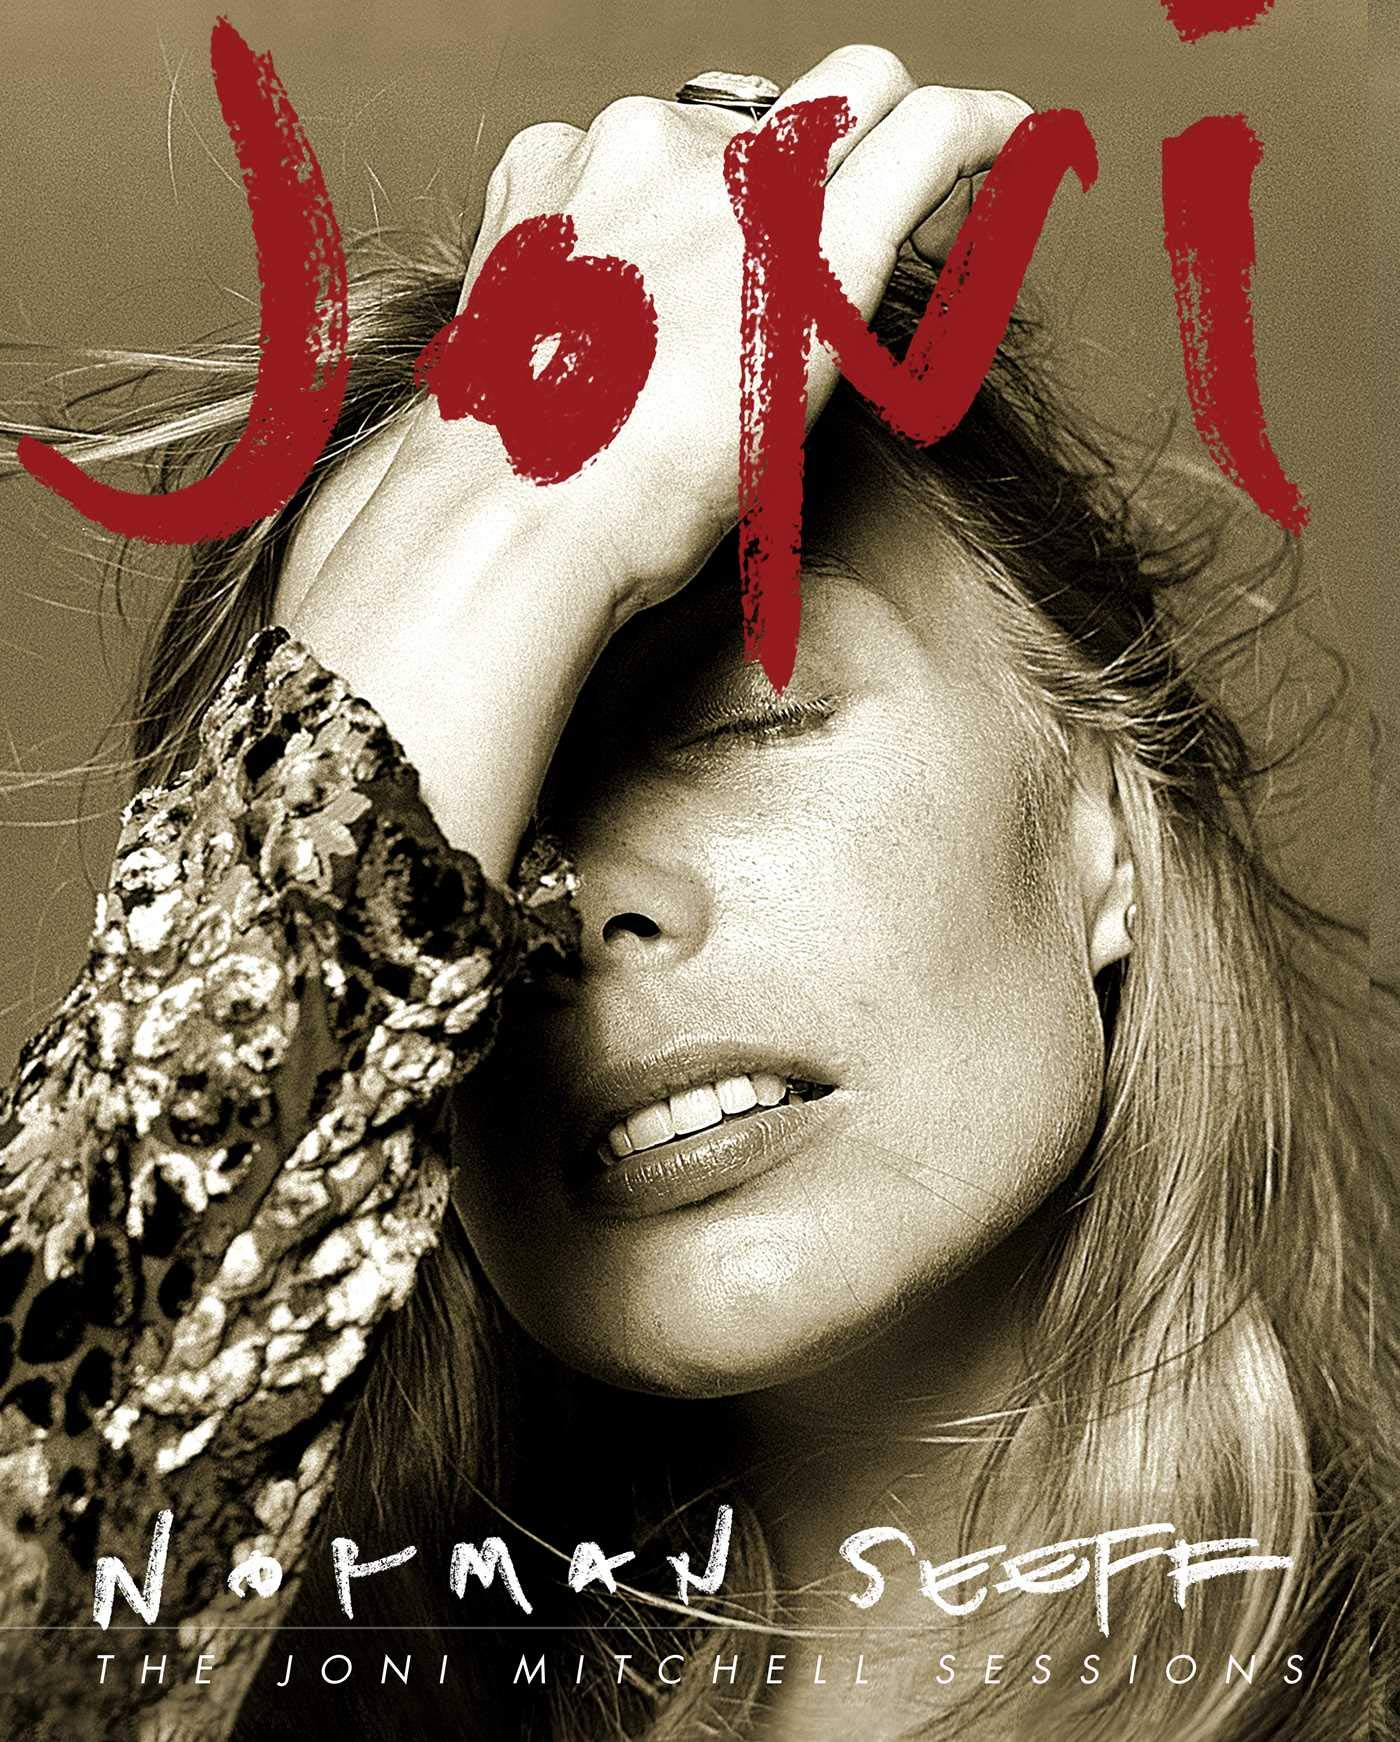 Joni: The Joni Mitchell Sessions by Insight Editions